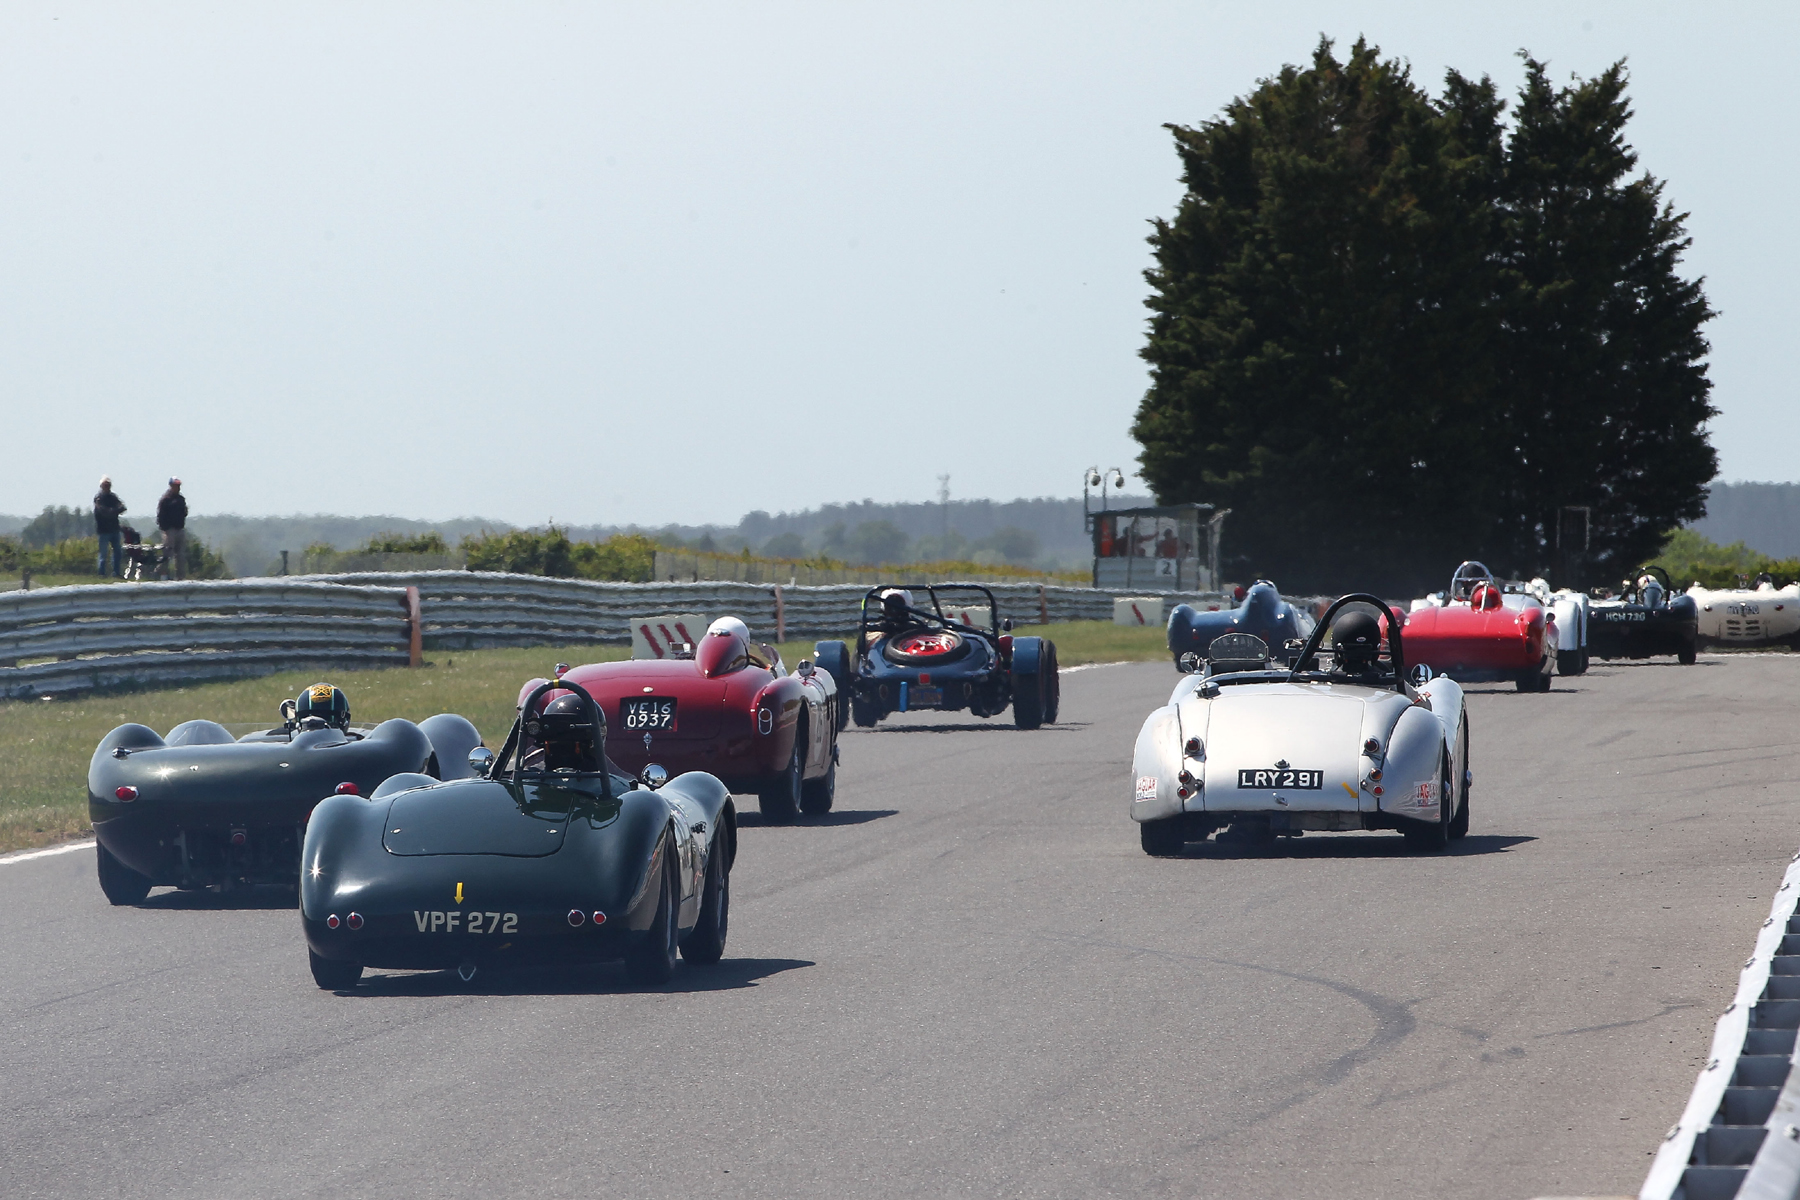 The rise from the startline is evident here as the cars head towards Riches. At the back is Paul Griffin's lovely ex Archie Scott Brown Connaught ALSR. To his left is Richard Last's Lister Jaguar. Ahead, is Chris Mann's Alfa Romeo Disco Volante alongside Andrew Wenman's Jaguar XK120 with the very stark rear end of Rob Manson's Baldwin Mercury Special from 1949 and therefore the oldest car in the race, ahead.  Photo - Richard Styles